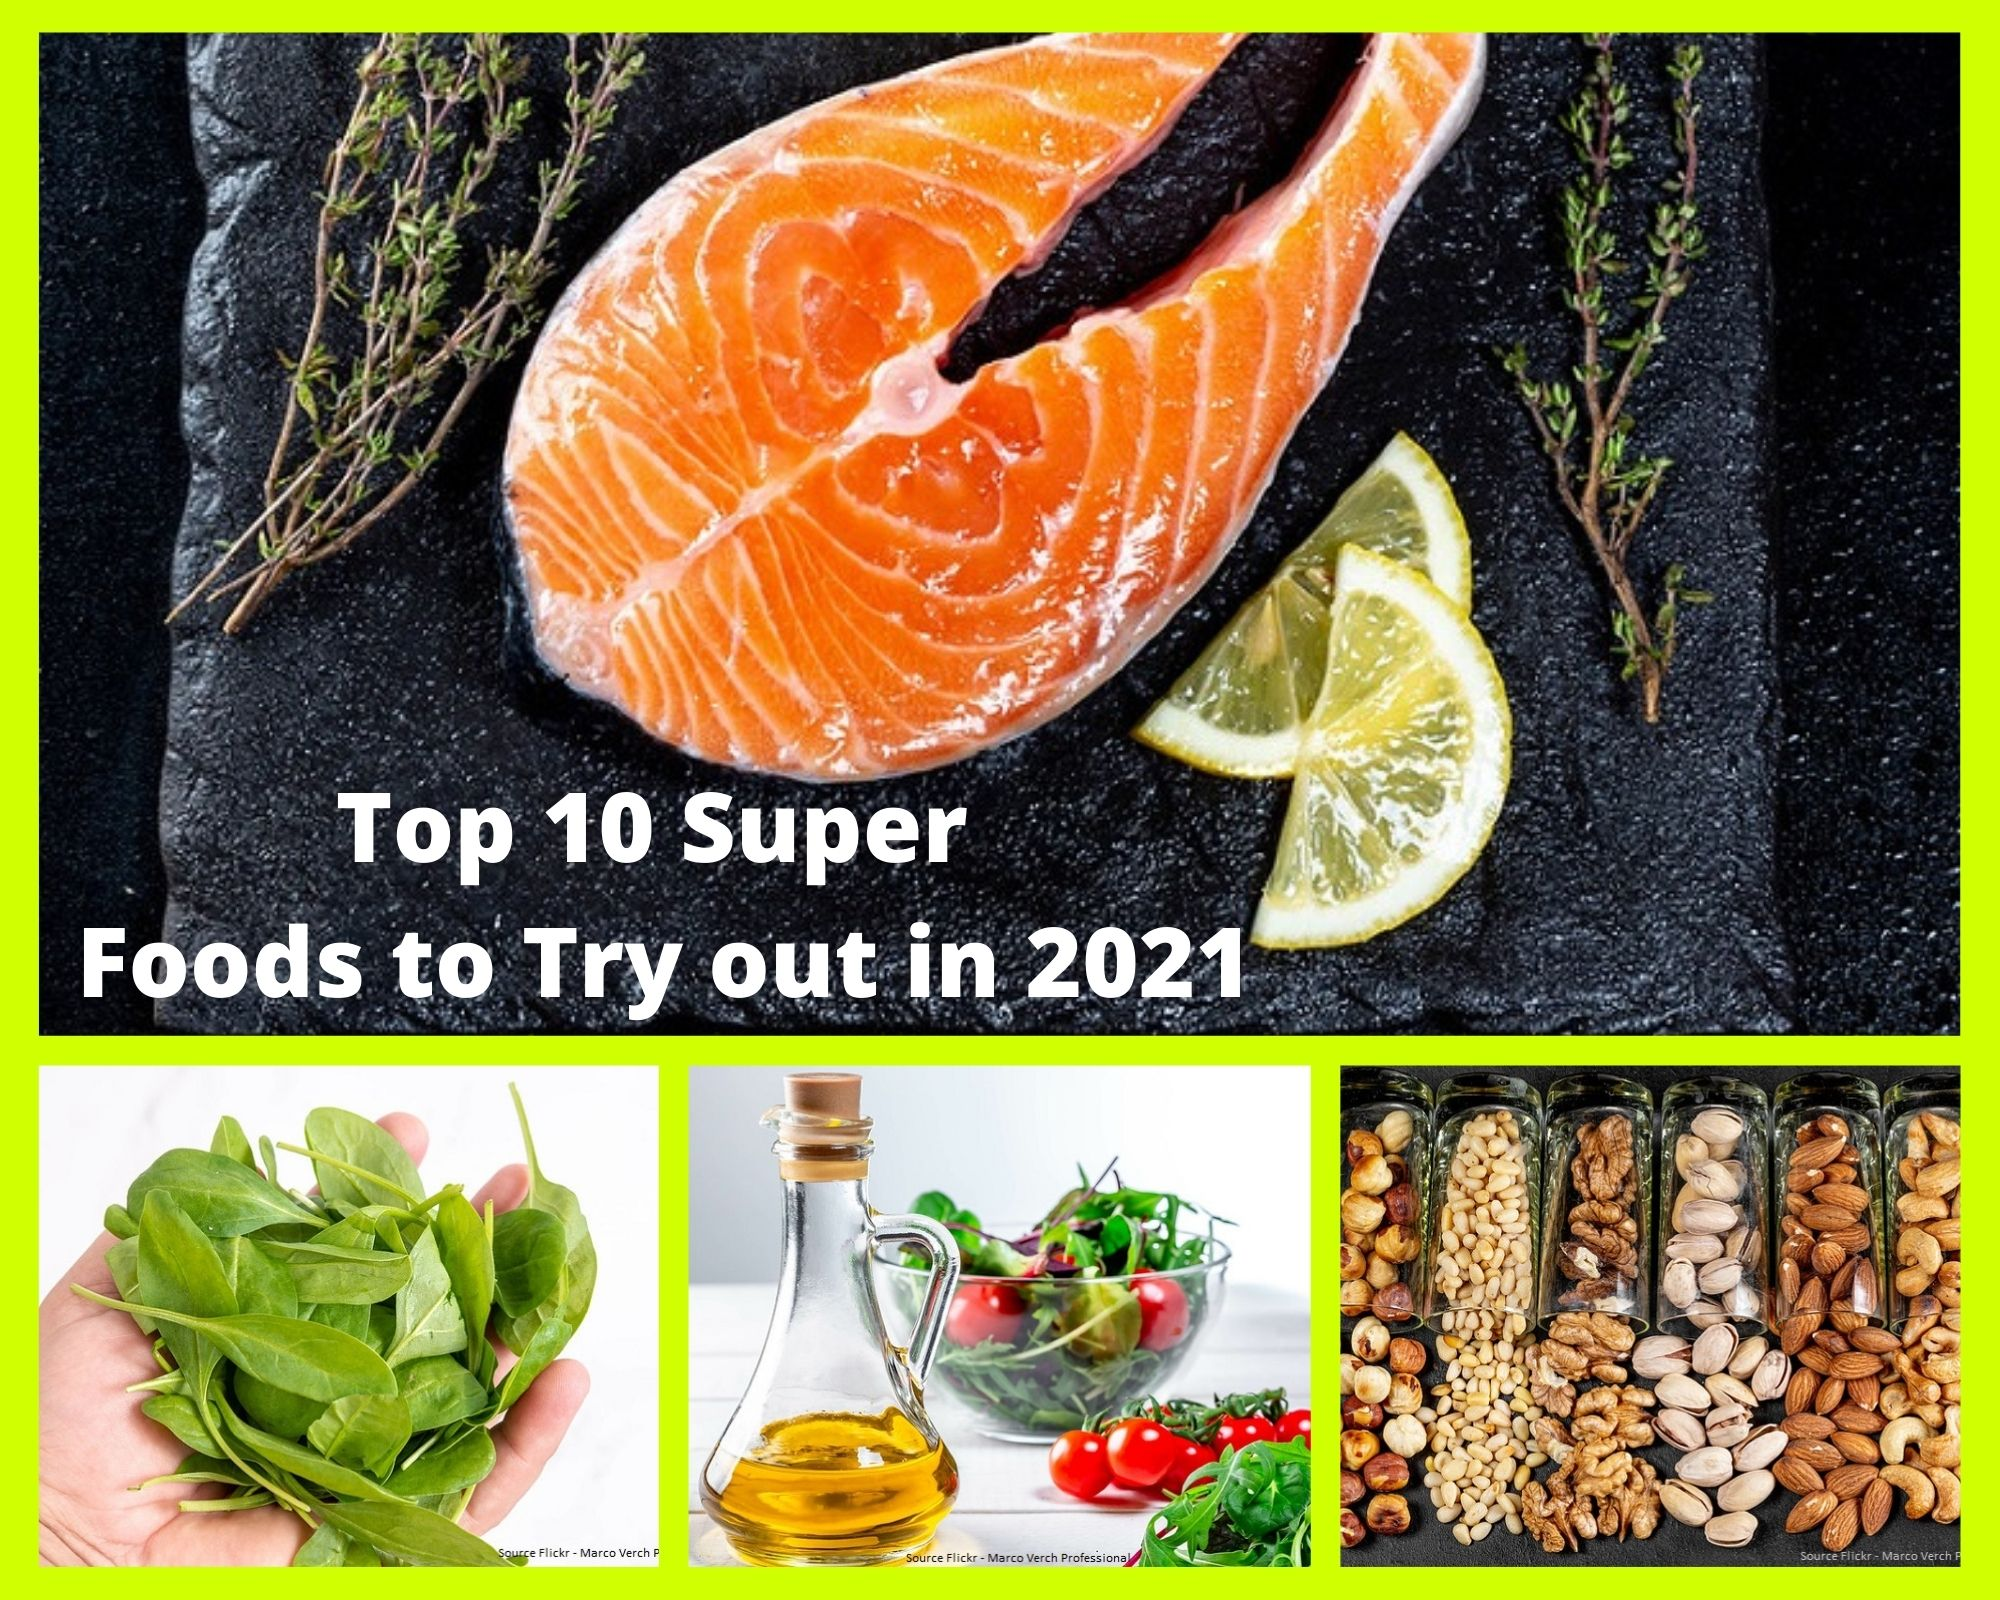 Top 10 Super Foods to try out in 2021